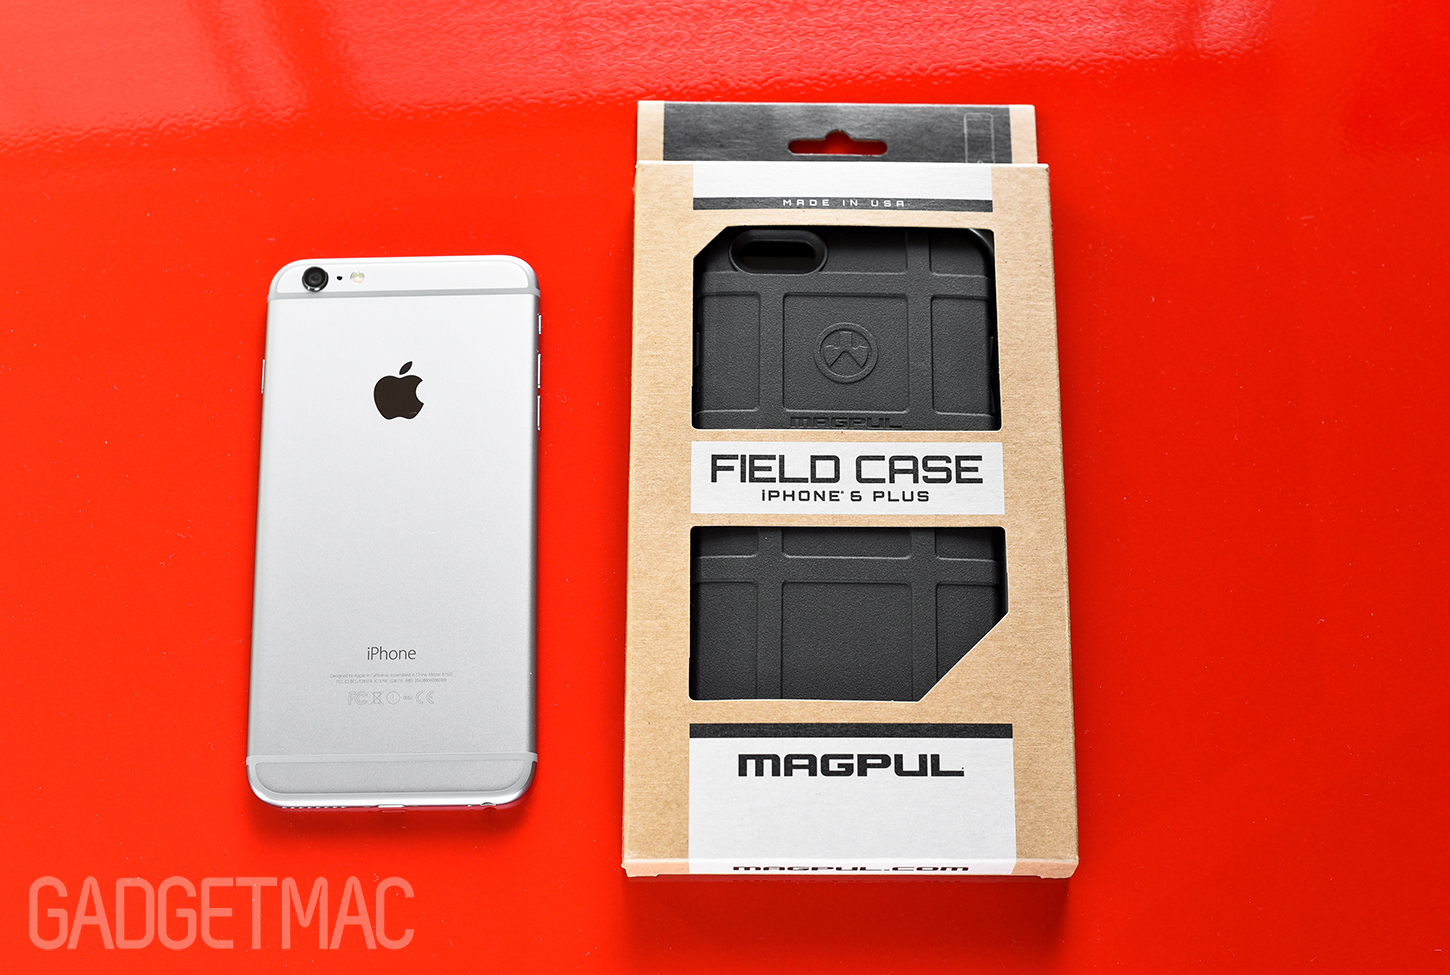 magpul-field-case-for-iphone-6-plus.jpg